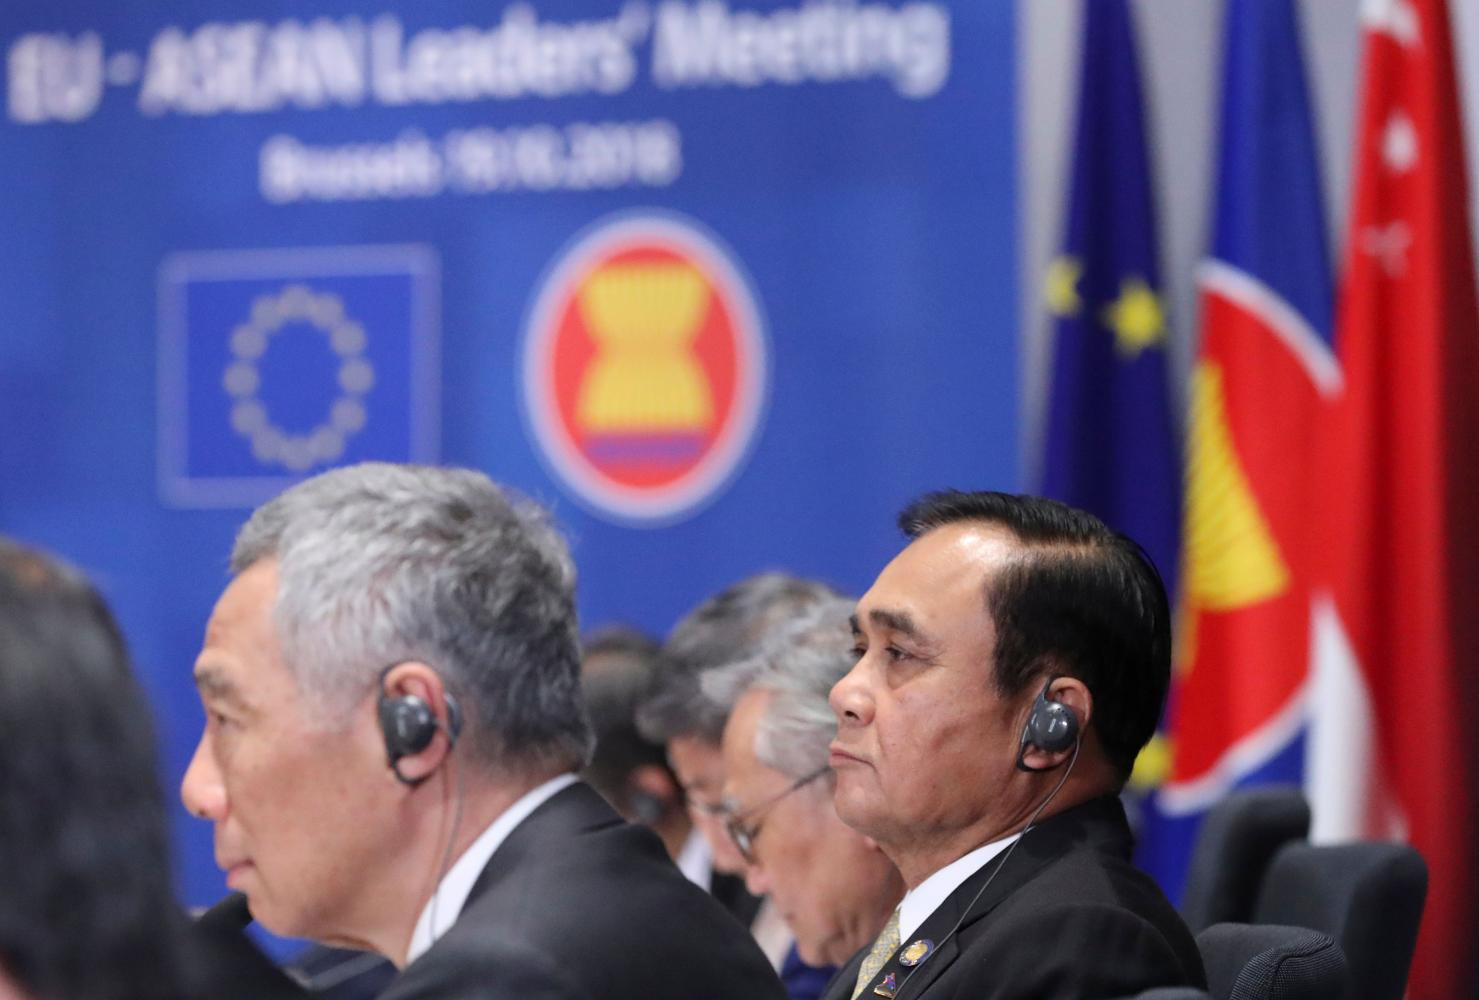 Prime Minister Prayut Chan-o-cha and Singapore Prime Minister Lee Hsien Loong at the EU Asean leaders meeting in Brussels last month.(AFP photo)